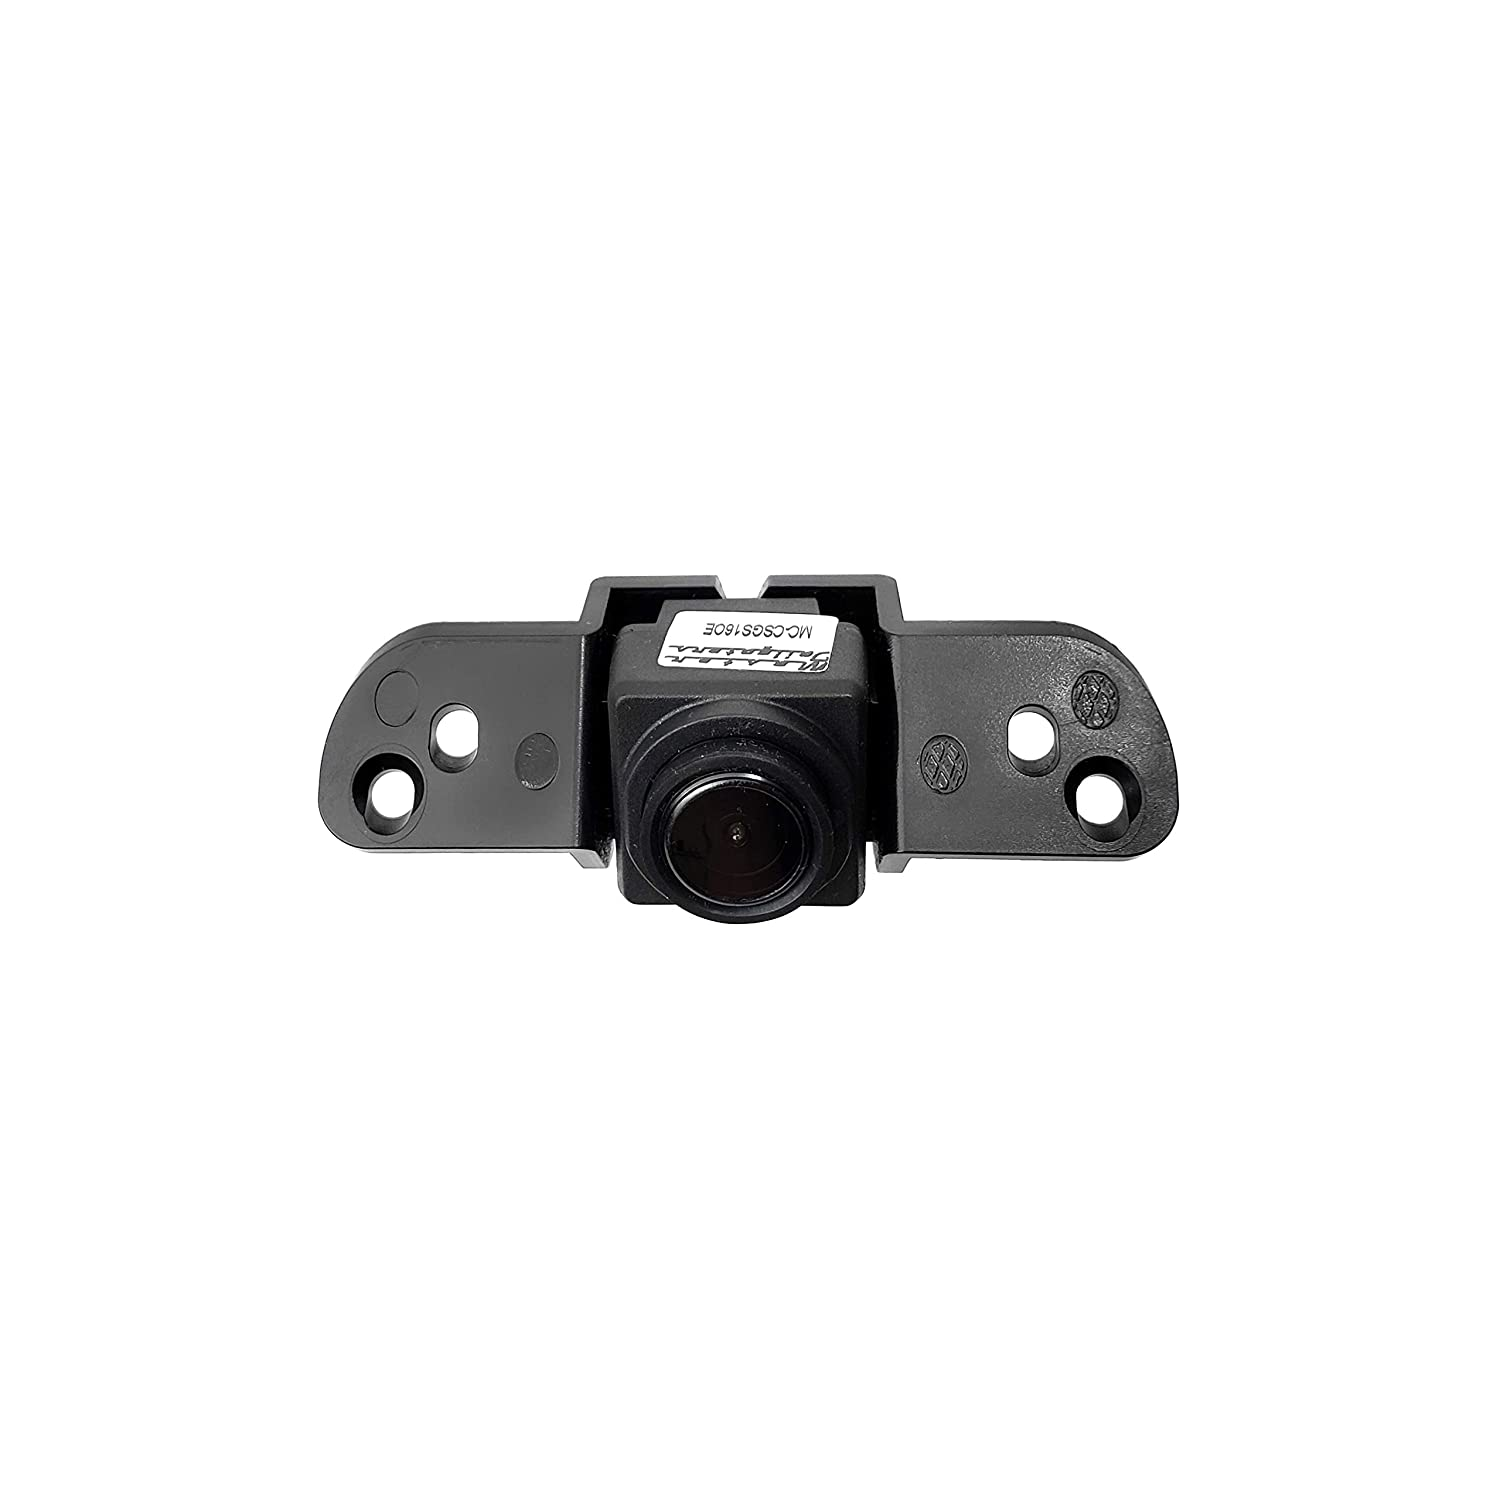 Master Tailgaters Replacement for Chevrolet Silverado//GMC Sierra 1500 2016-2019 3500 23363727 2016-2019 Backup Camera OE Part # 84062896 2500